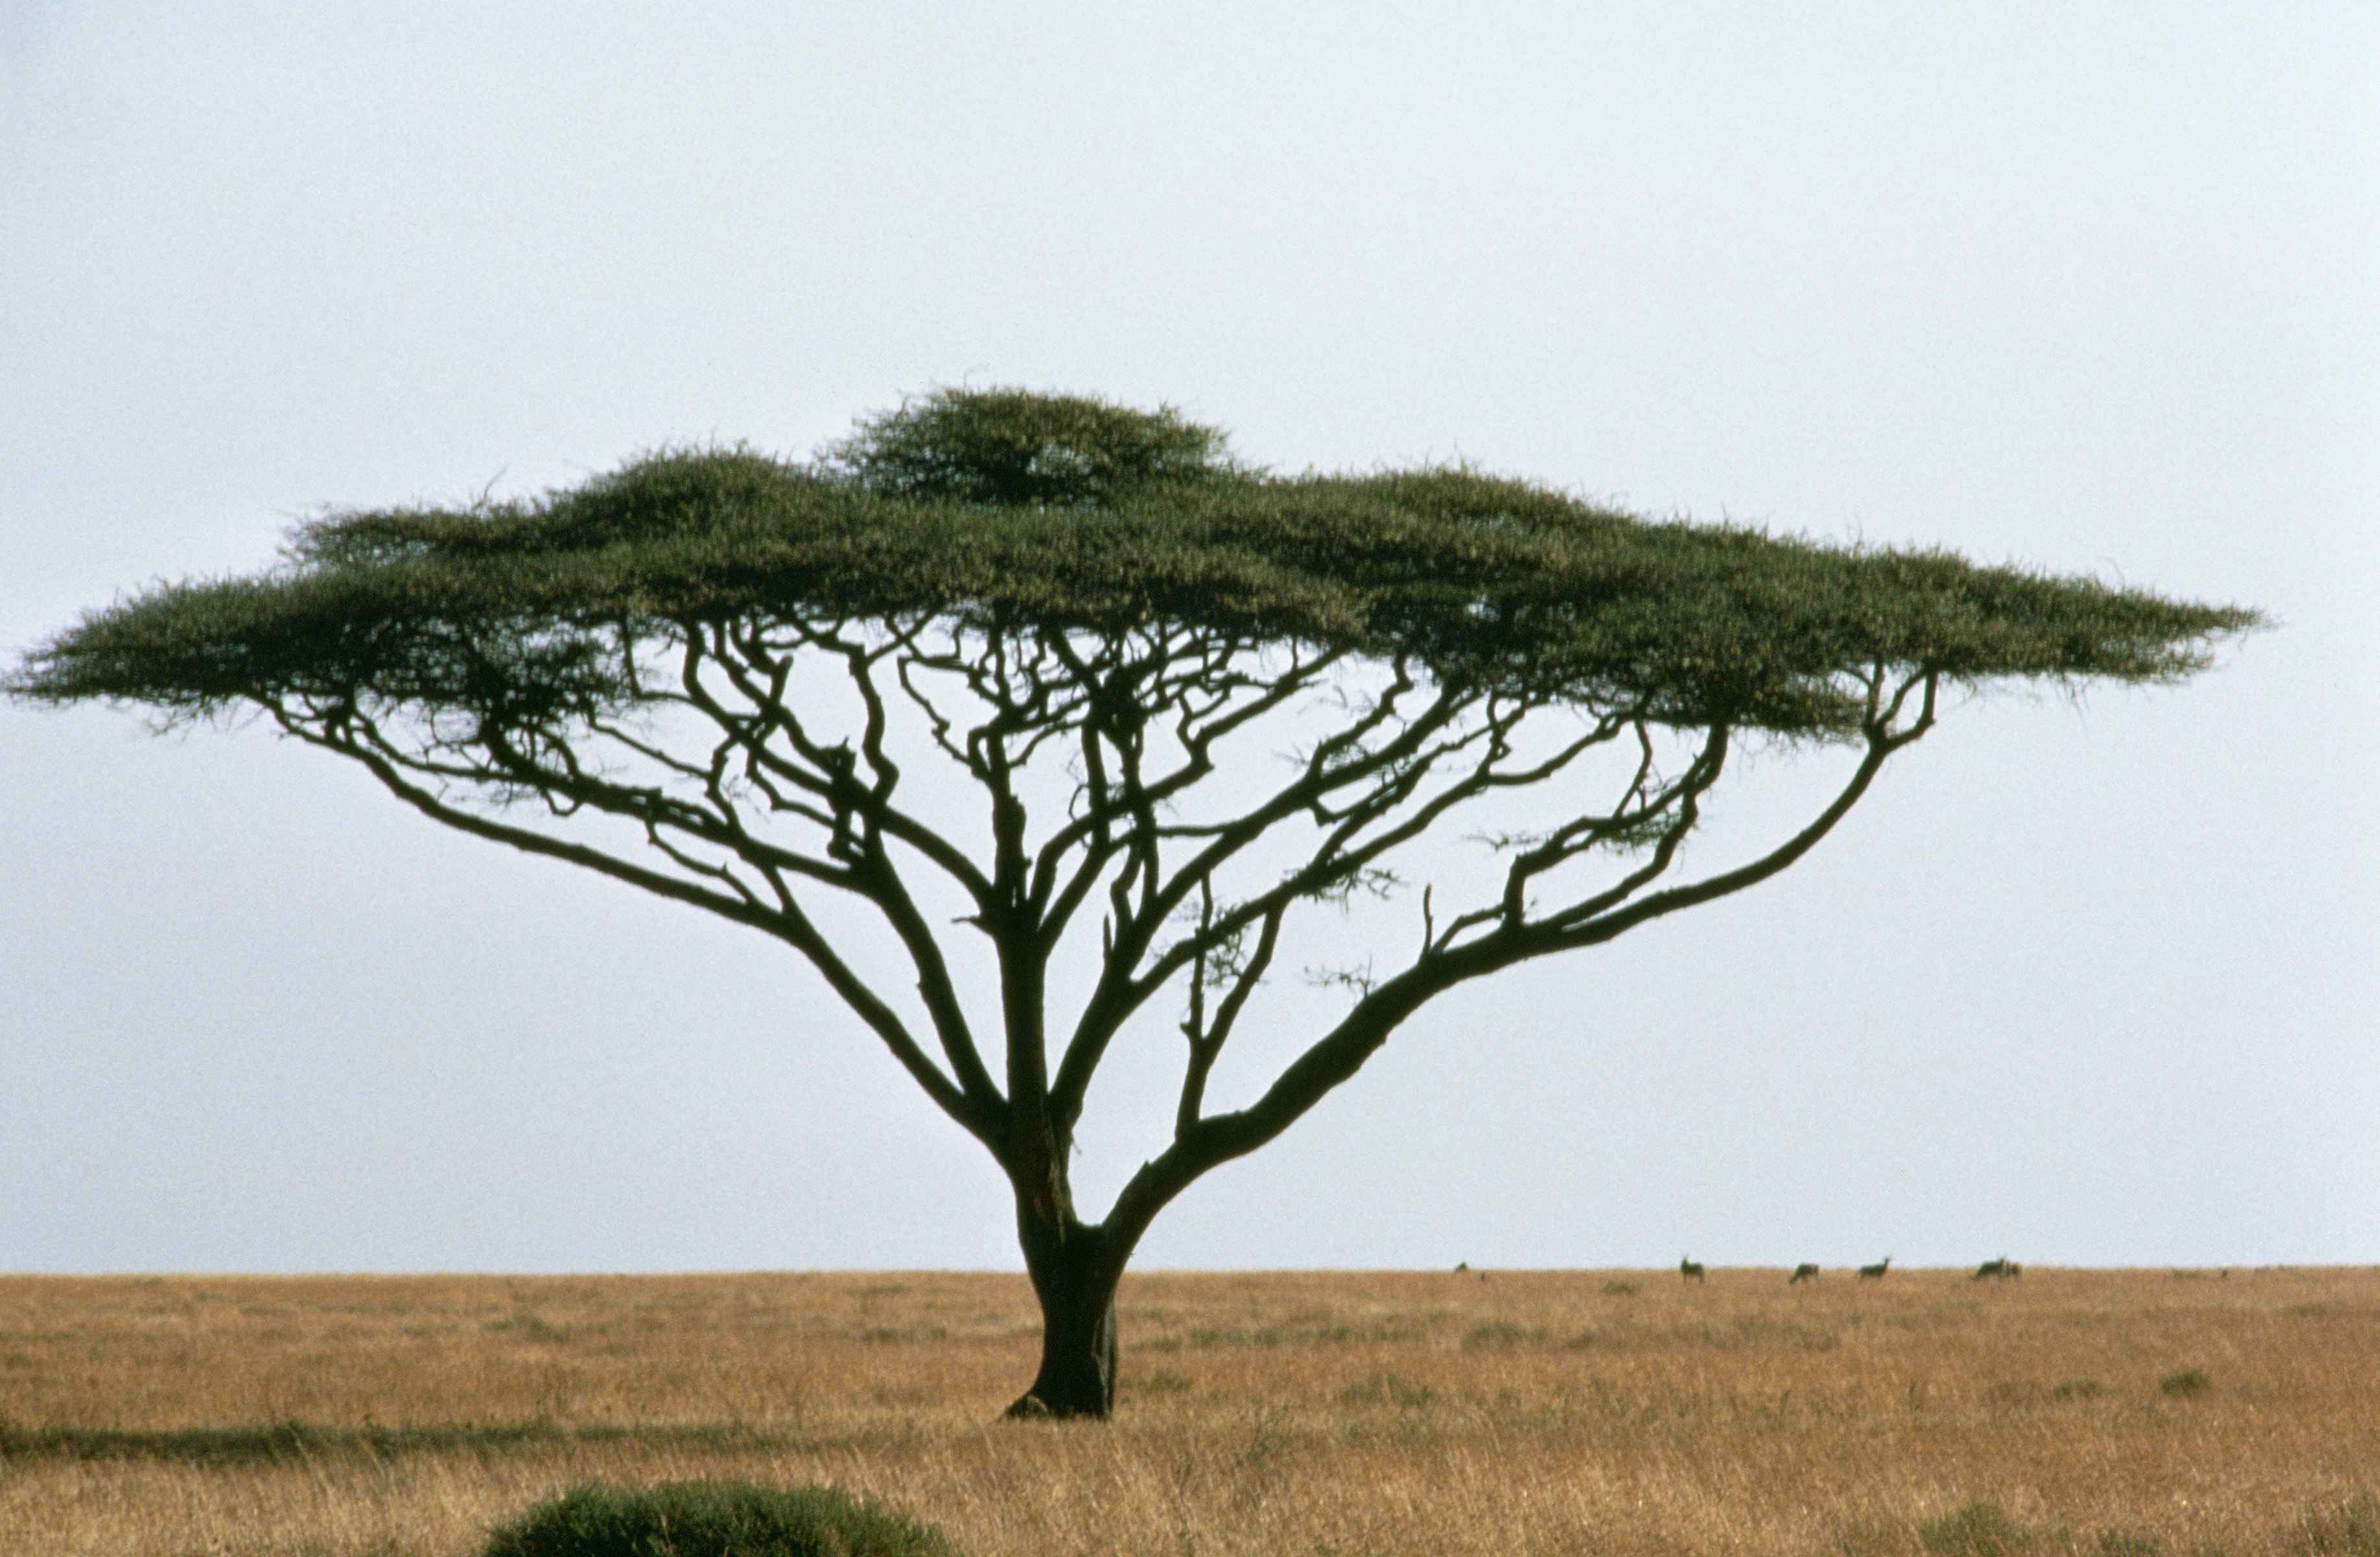 Fileumbrella Thorn Acacia Or Israeli Babool Tree Plant Acacia